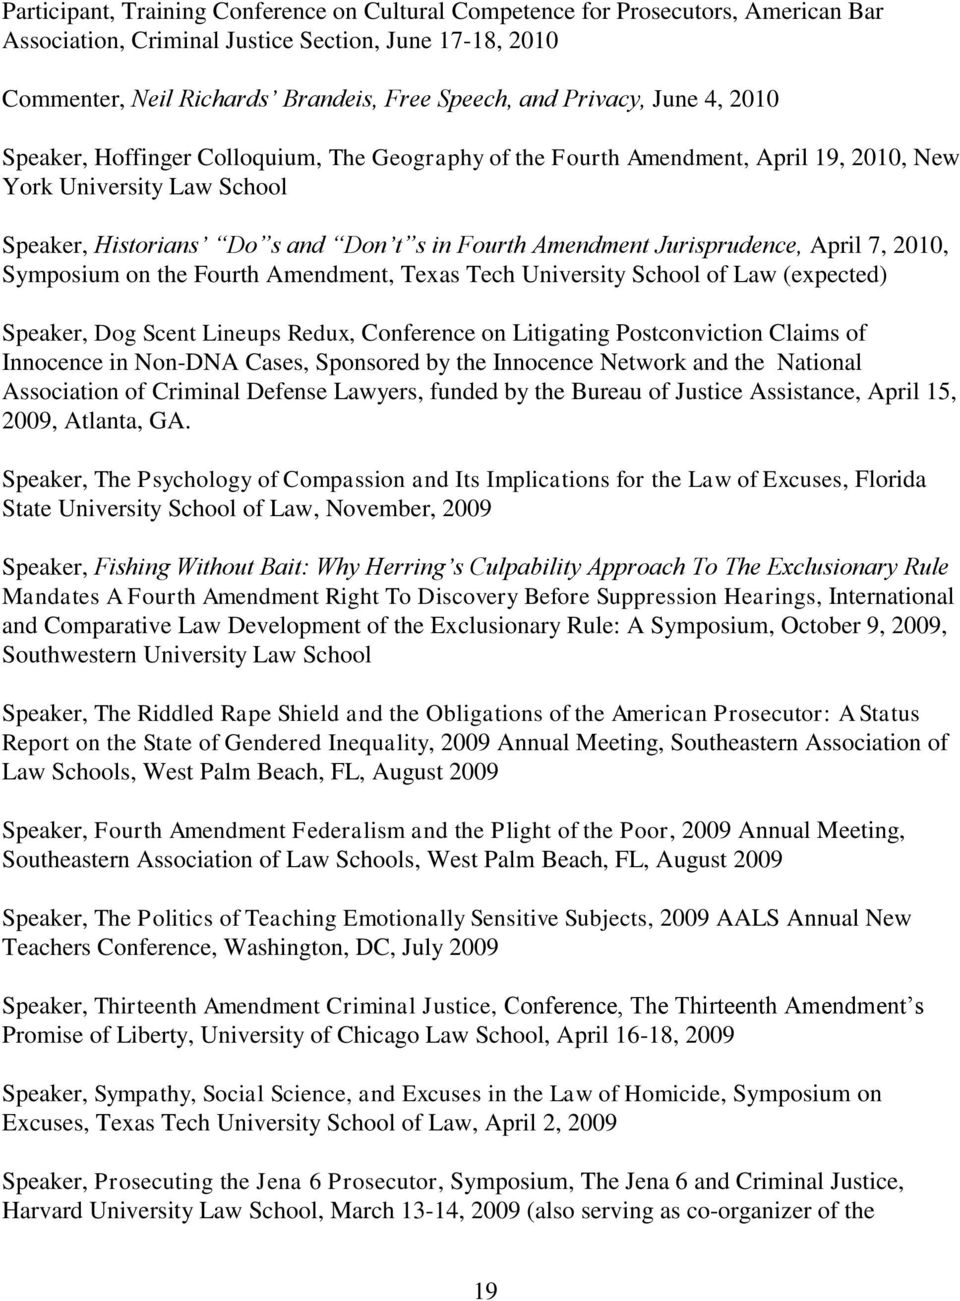 Jurisprudence, April 7, 2010, Symposium on the Fourth Amendment, Texas Tech University School of Law (expected) Speaker, Dog Scent Lineups Redux, Conference on Litigating Postconviction Claims of